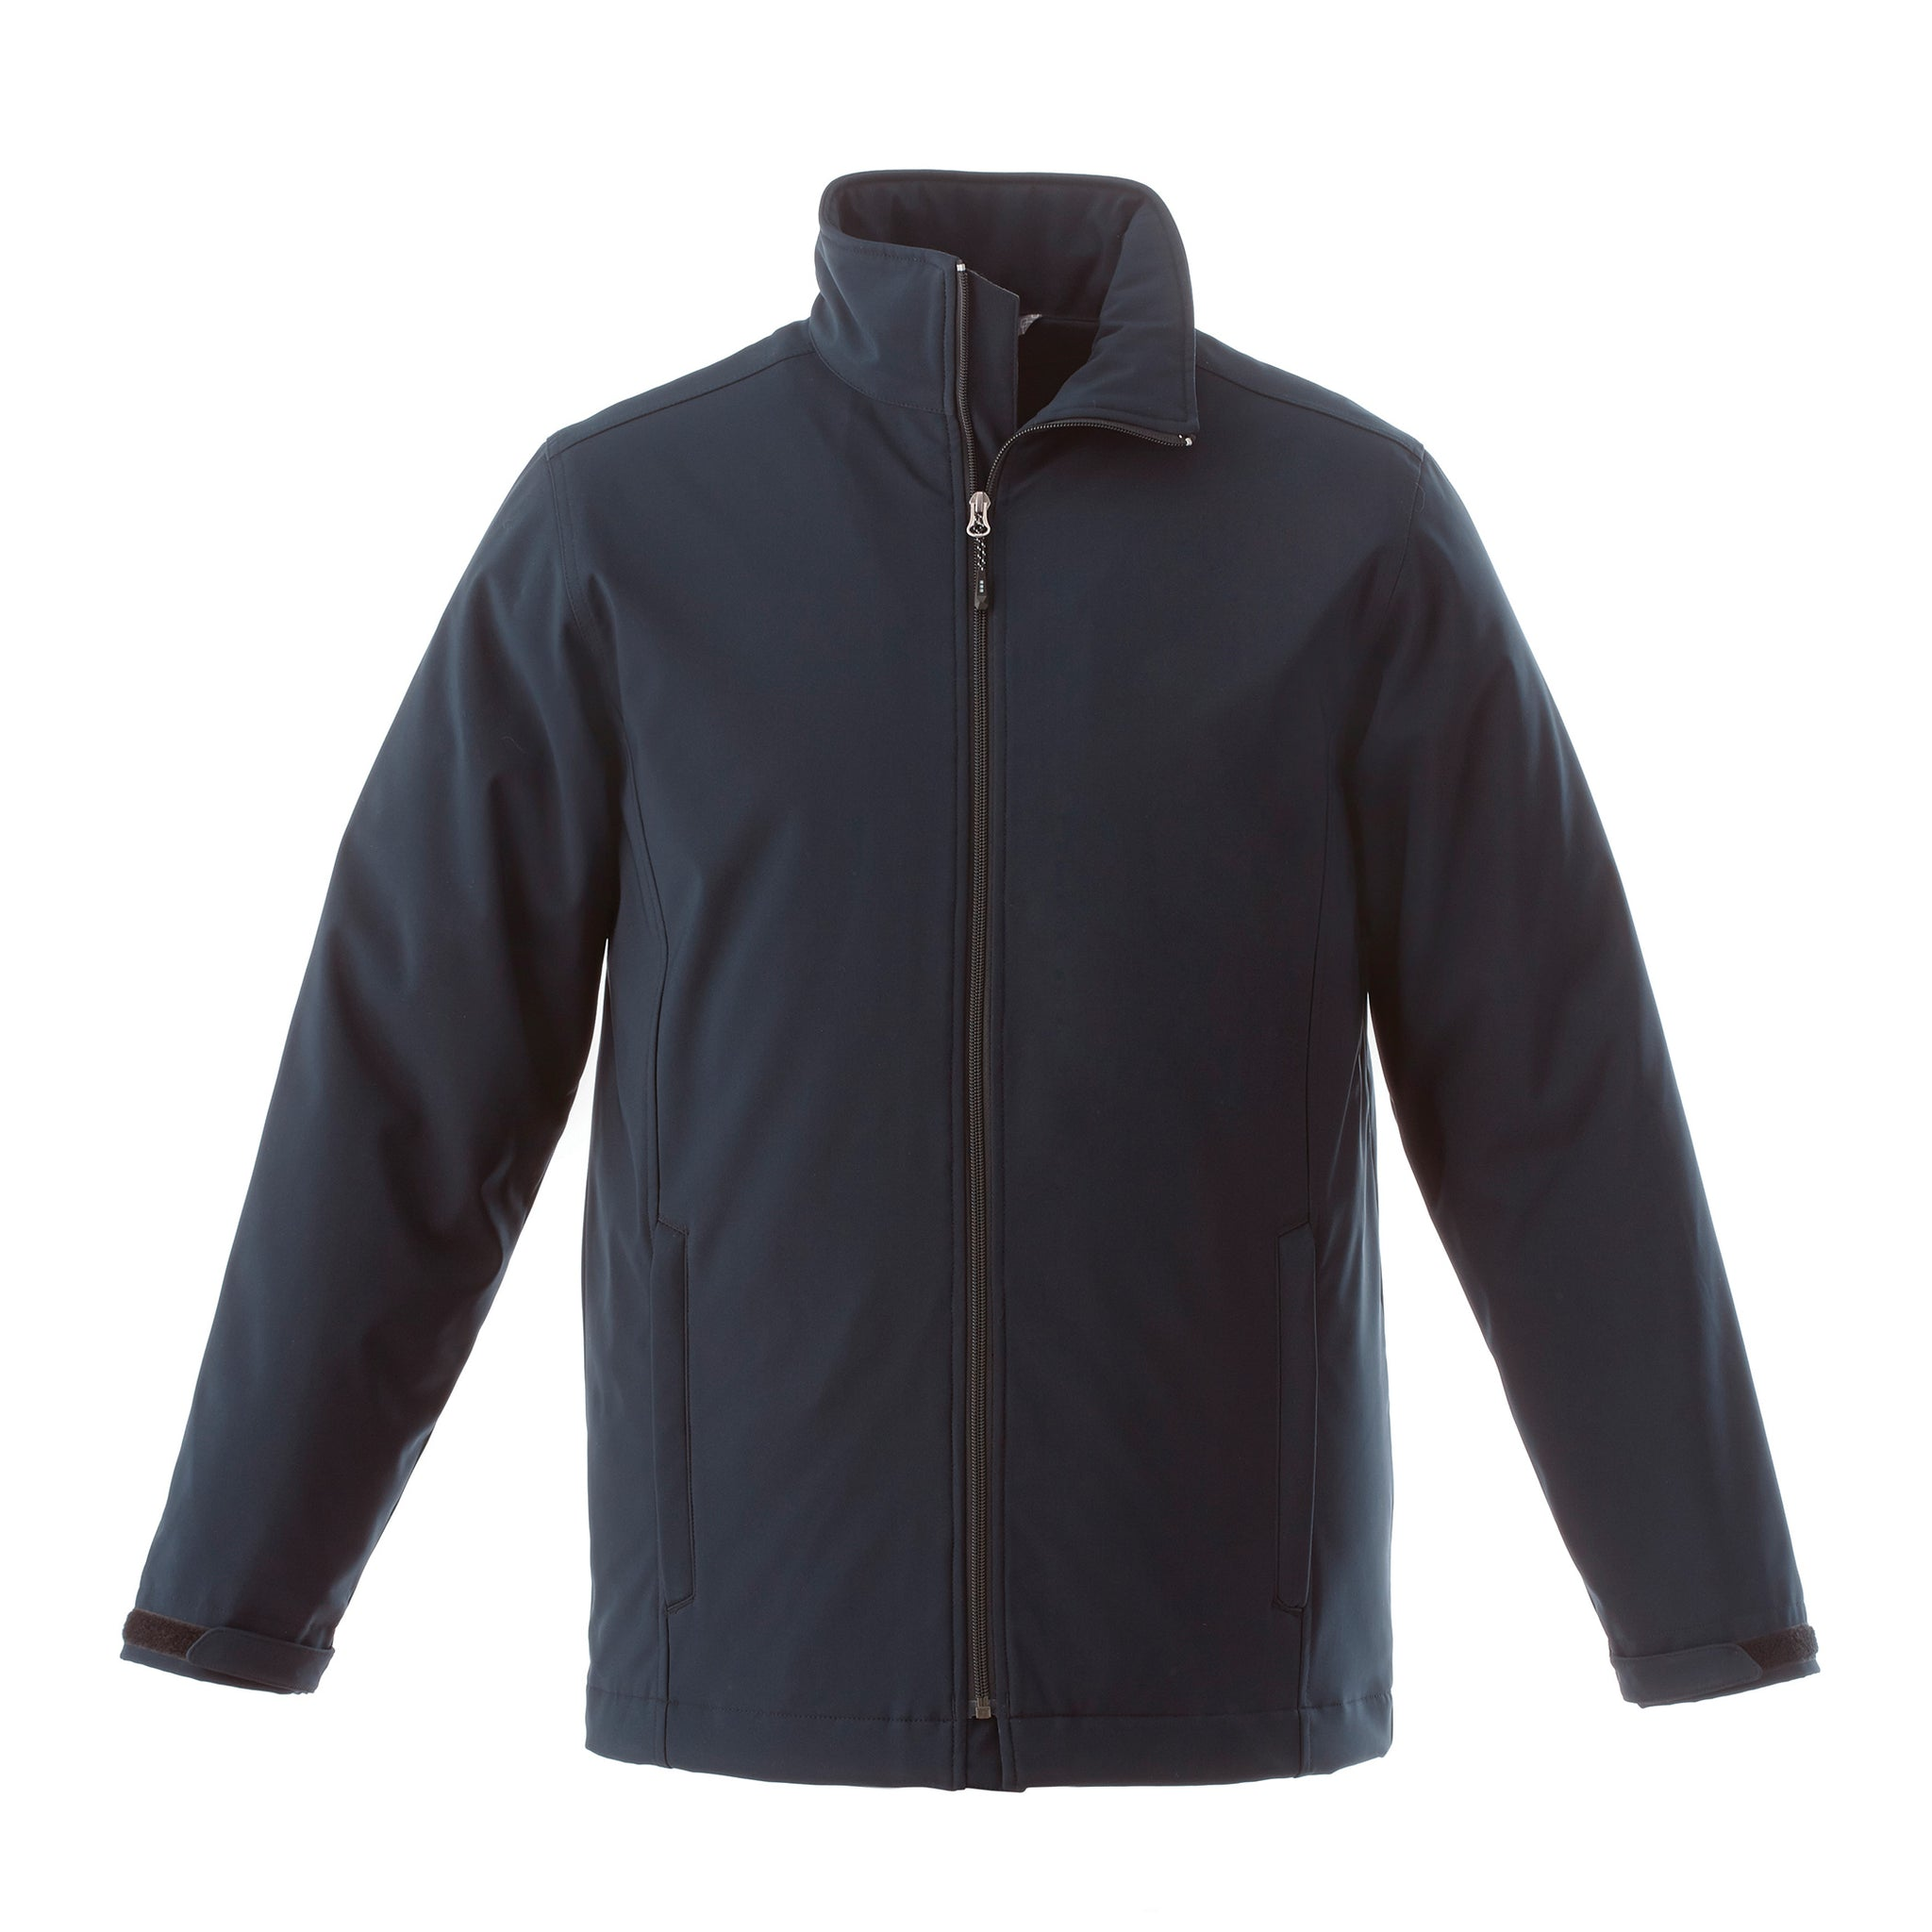 ELEVATE MEN'S LAWSON INSULATED SOFT SHELL